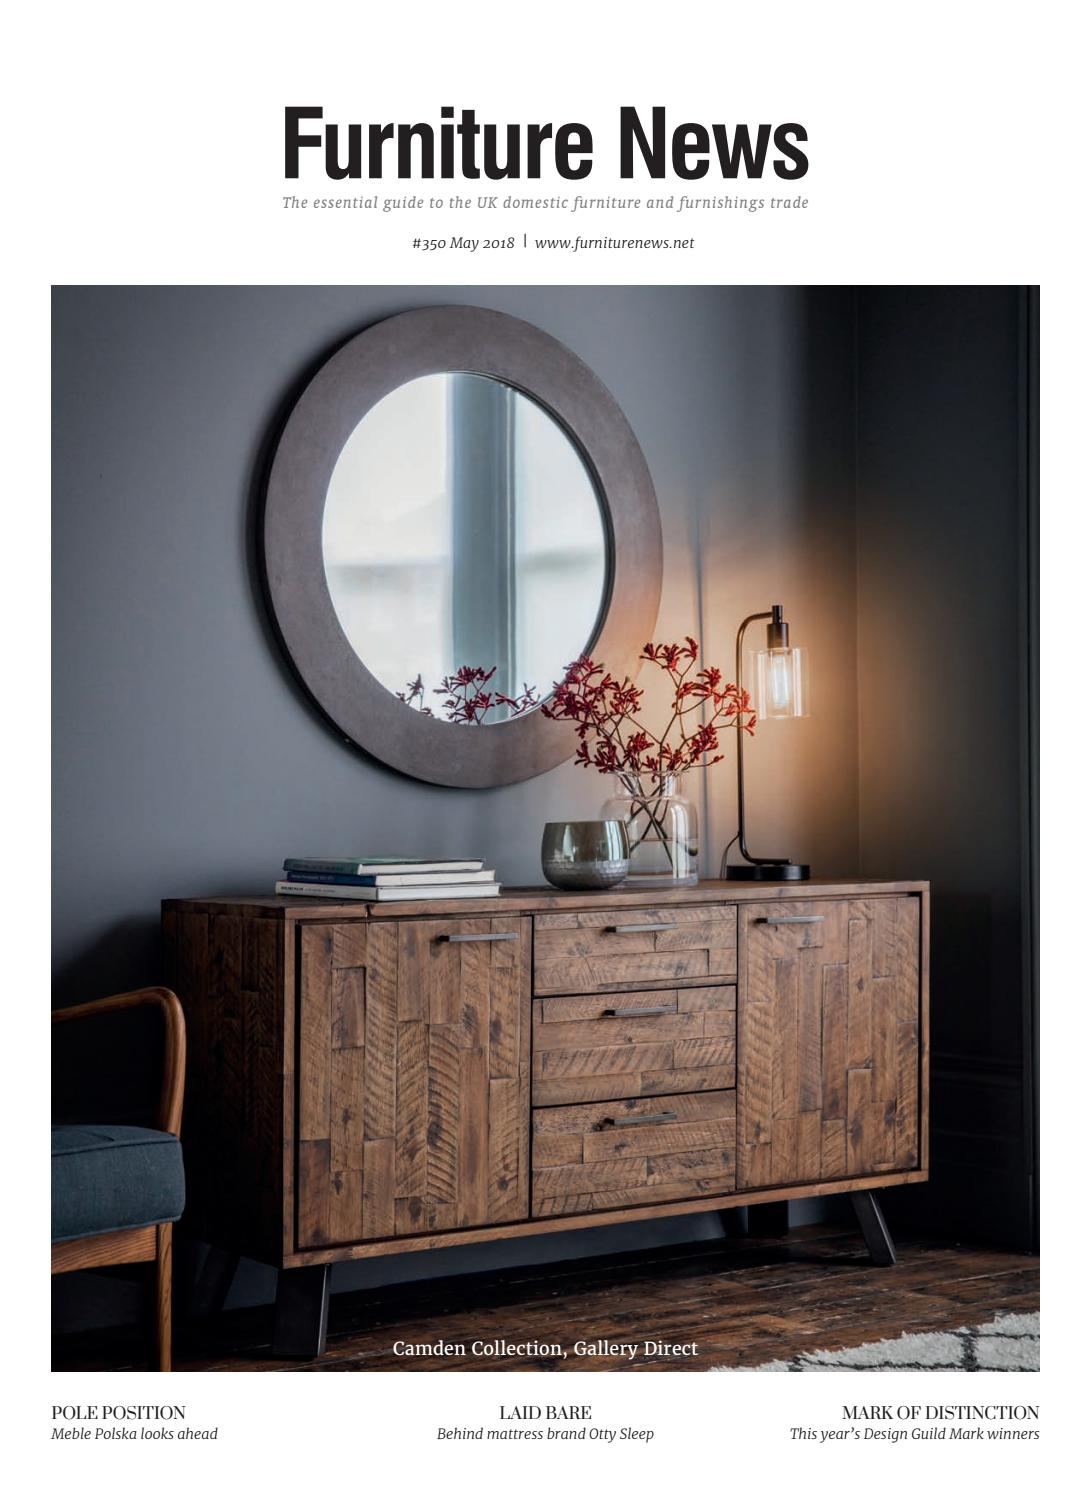 Meubles Ashley Saint-hubert Saint-hubert Qc Furniture News 350 By Gearing Media Group Ltd Issuu